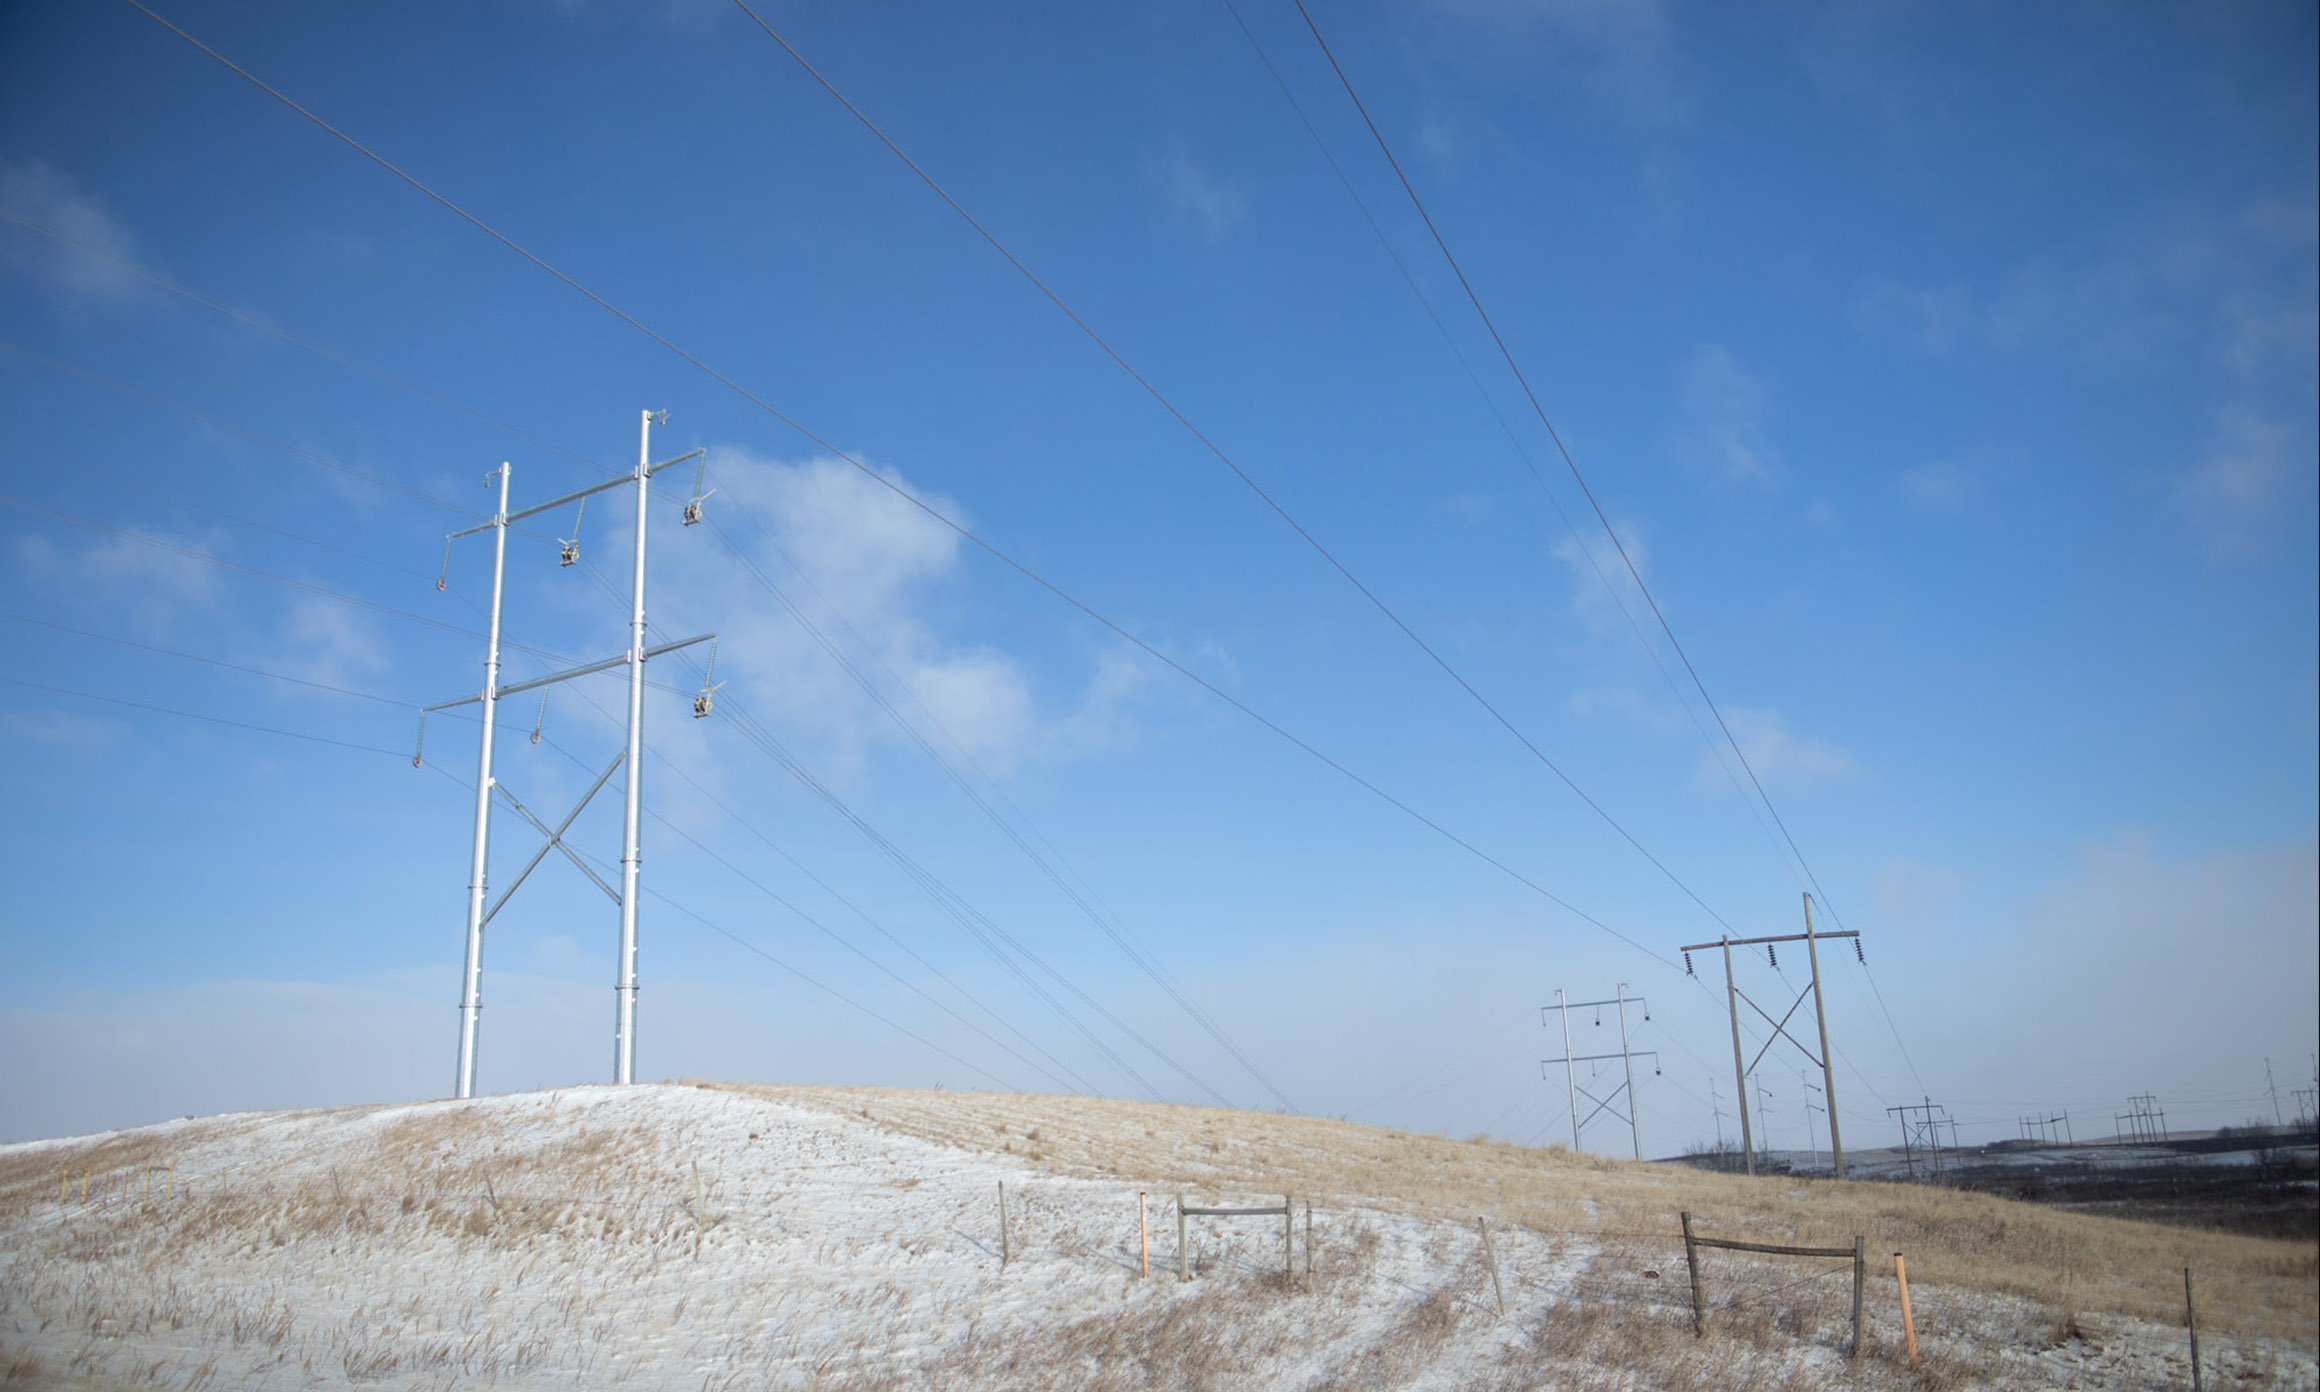 Transmission Lines on a snowy Saskatchewan field